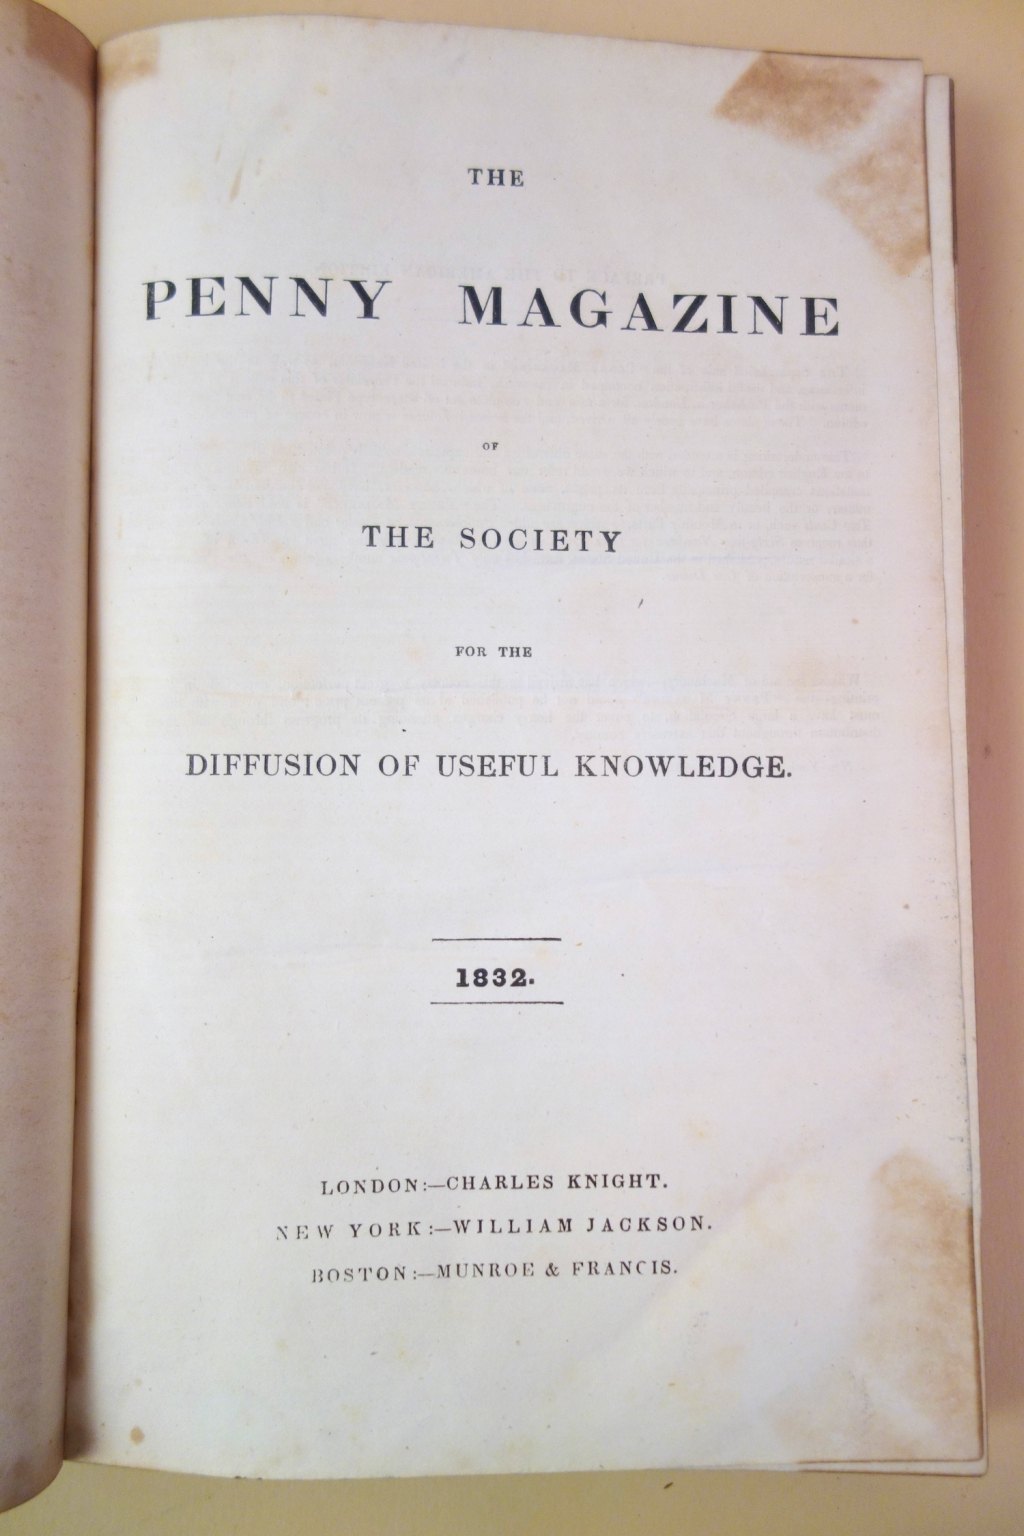 Title page of Vol. 1 of the American issue of The Penny Magazine